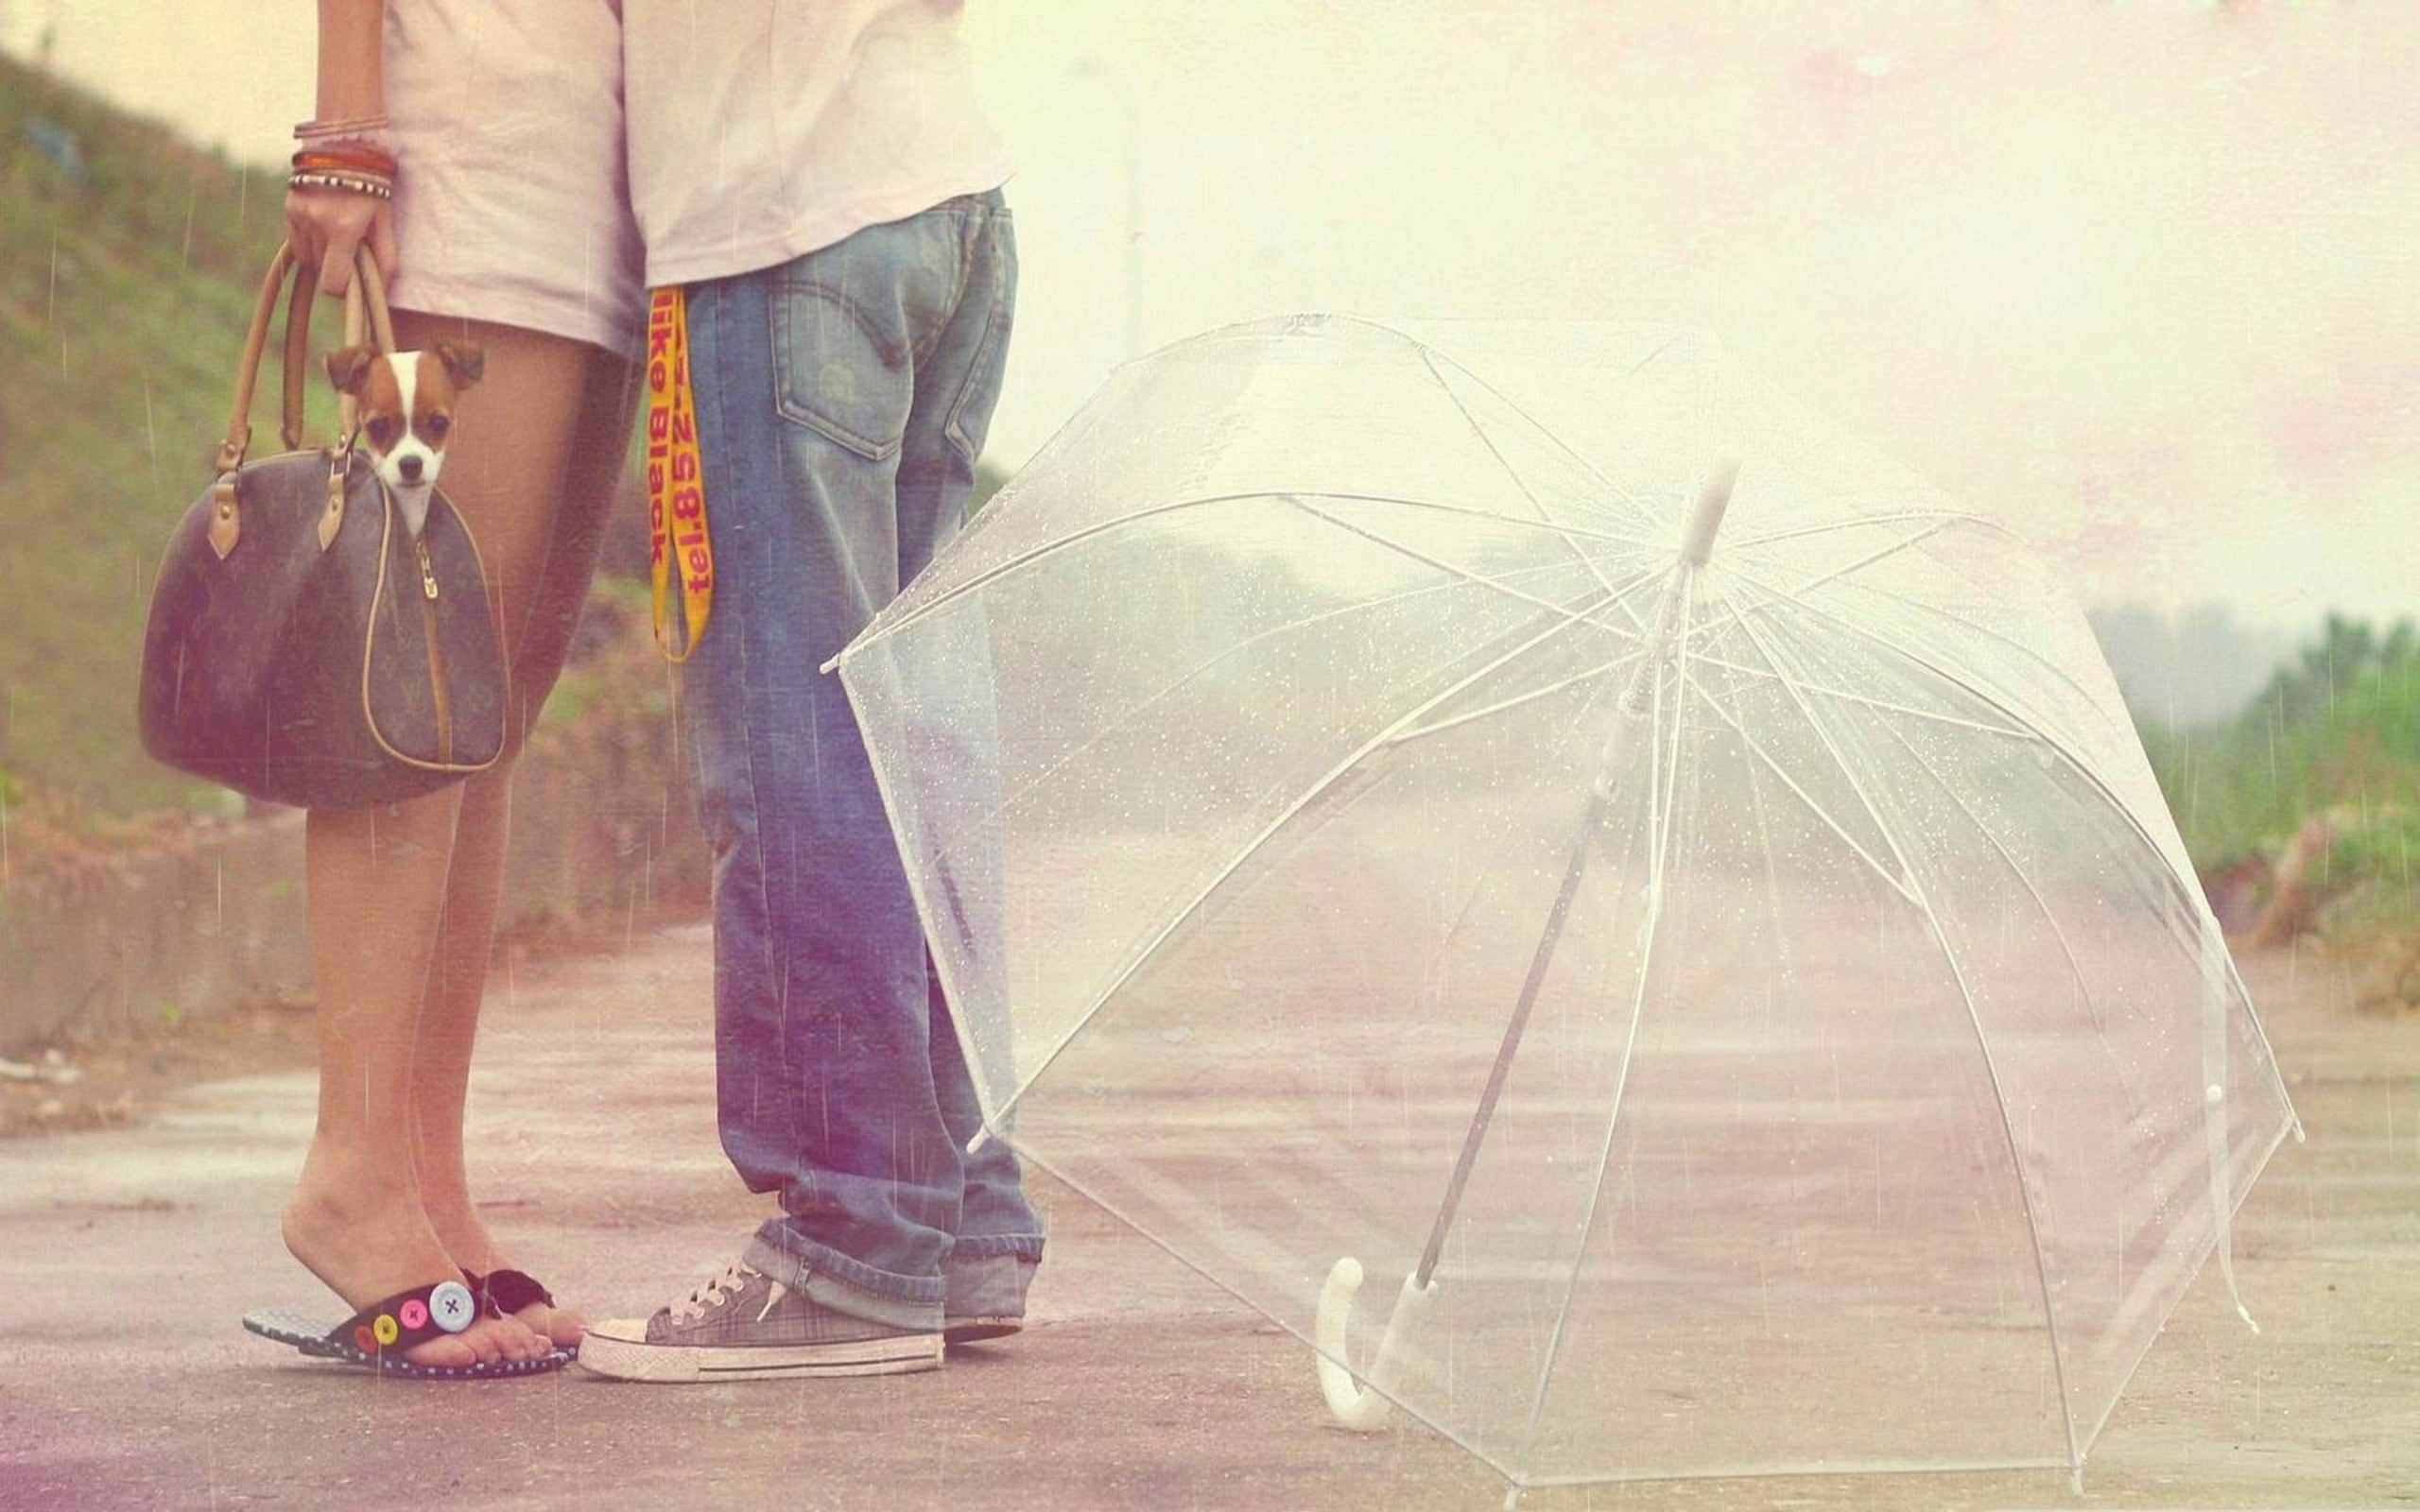 Cute Romantic Couple Wallpaper 21 Love Wallpapers Backgrounds Images Freecreatives